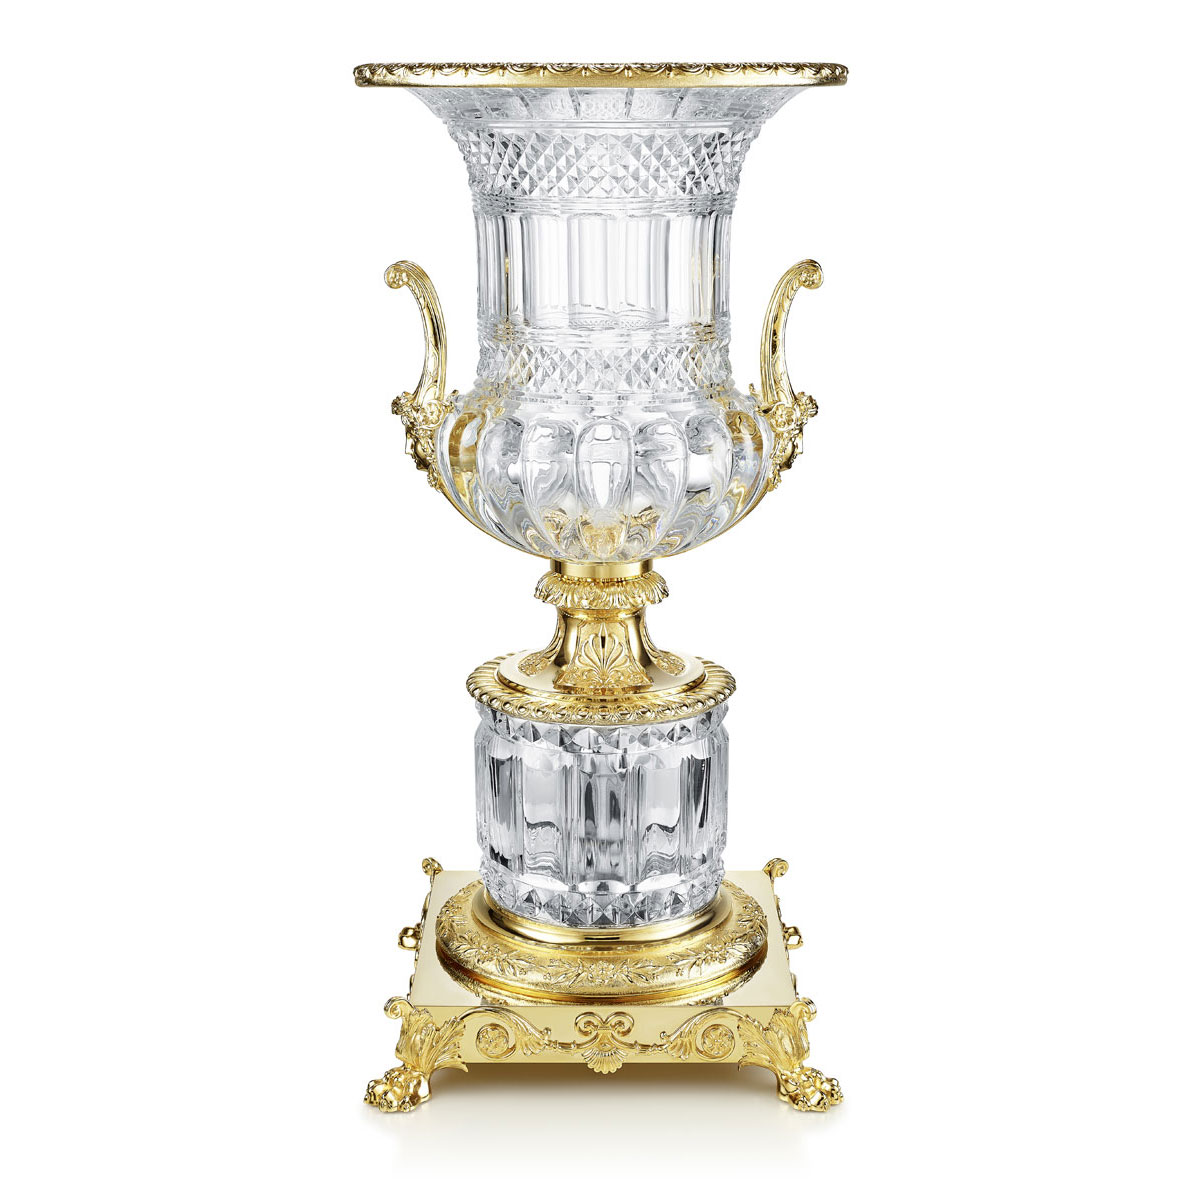 Baccarat Crystal Medicis Bronze Vase, Limited Edition Of 25